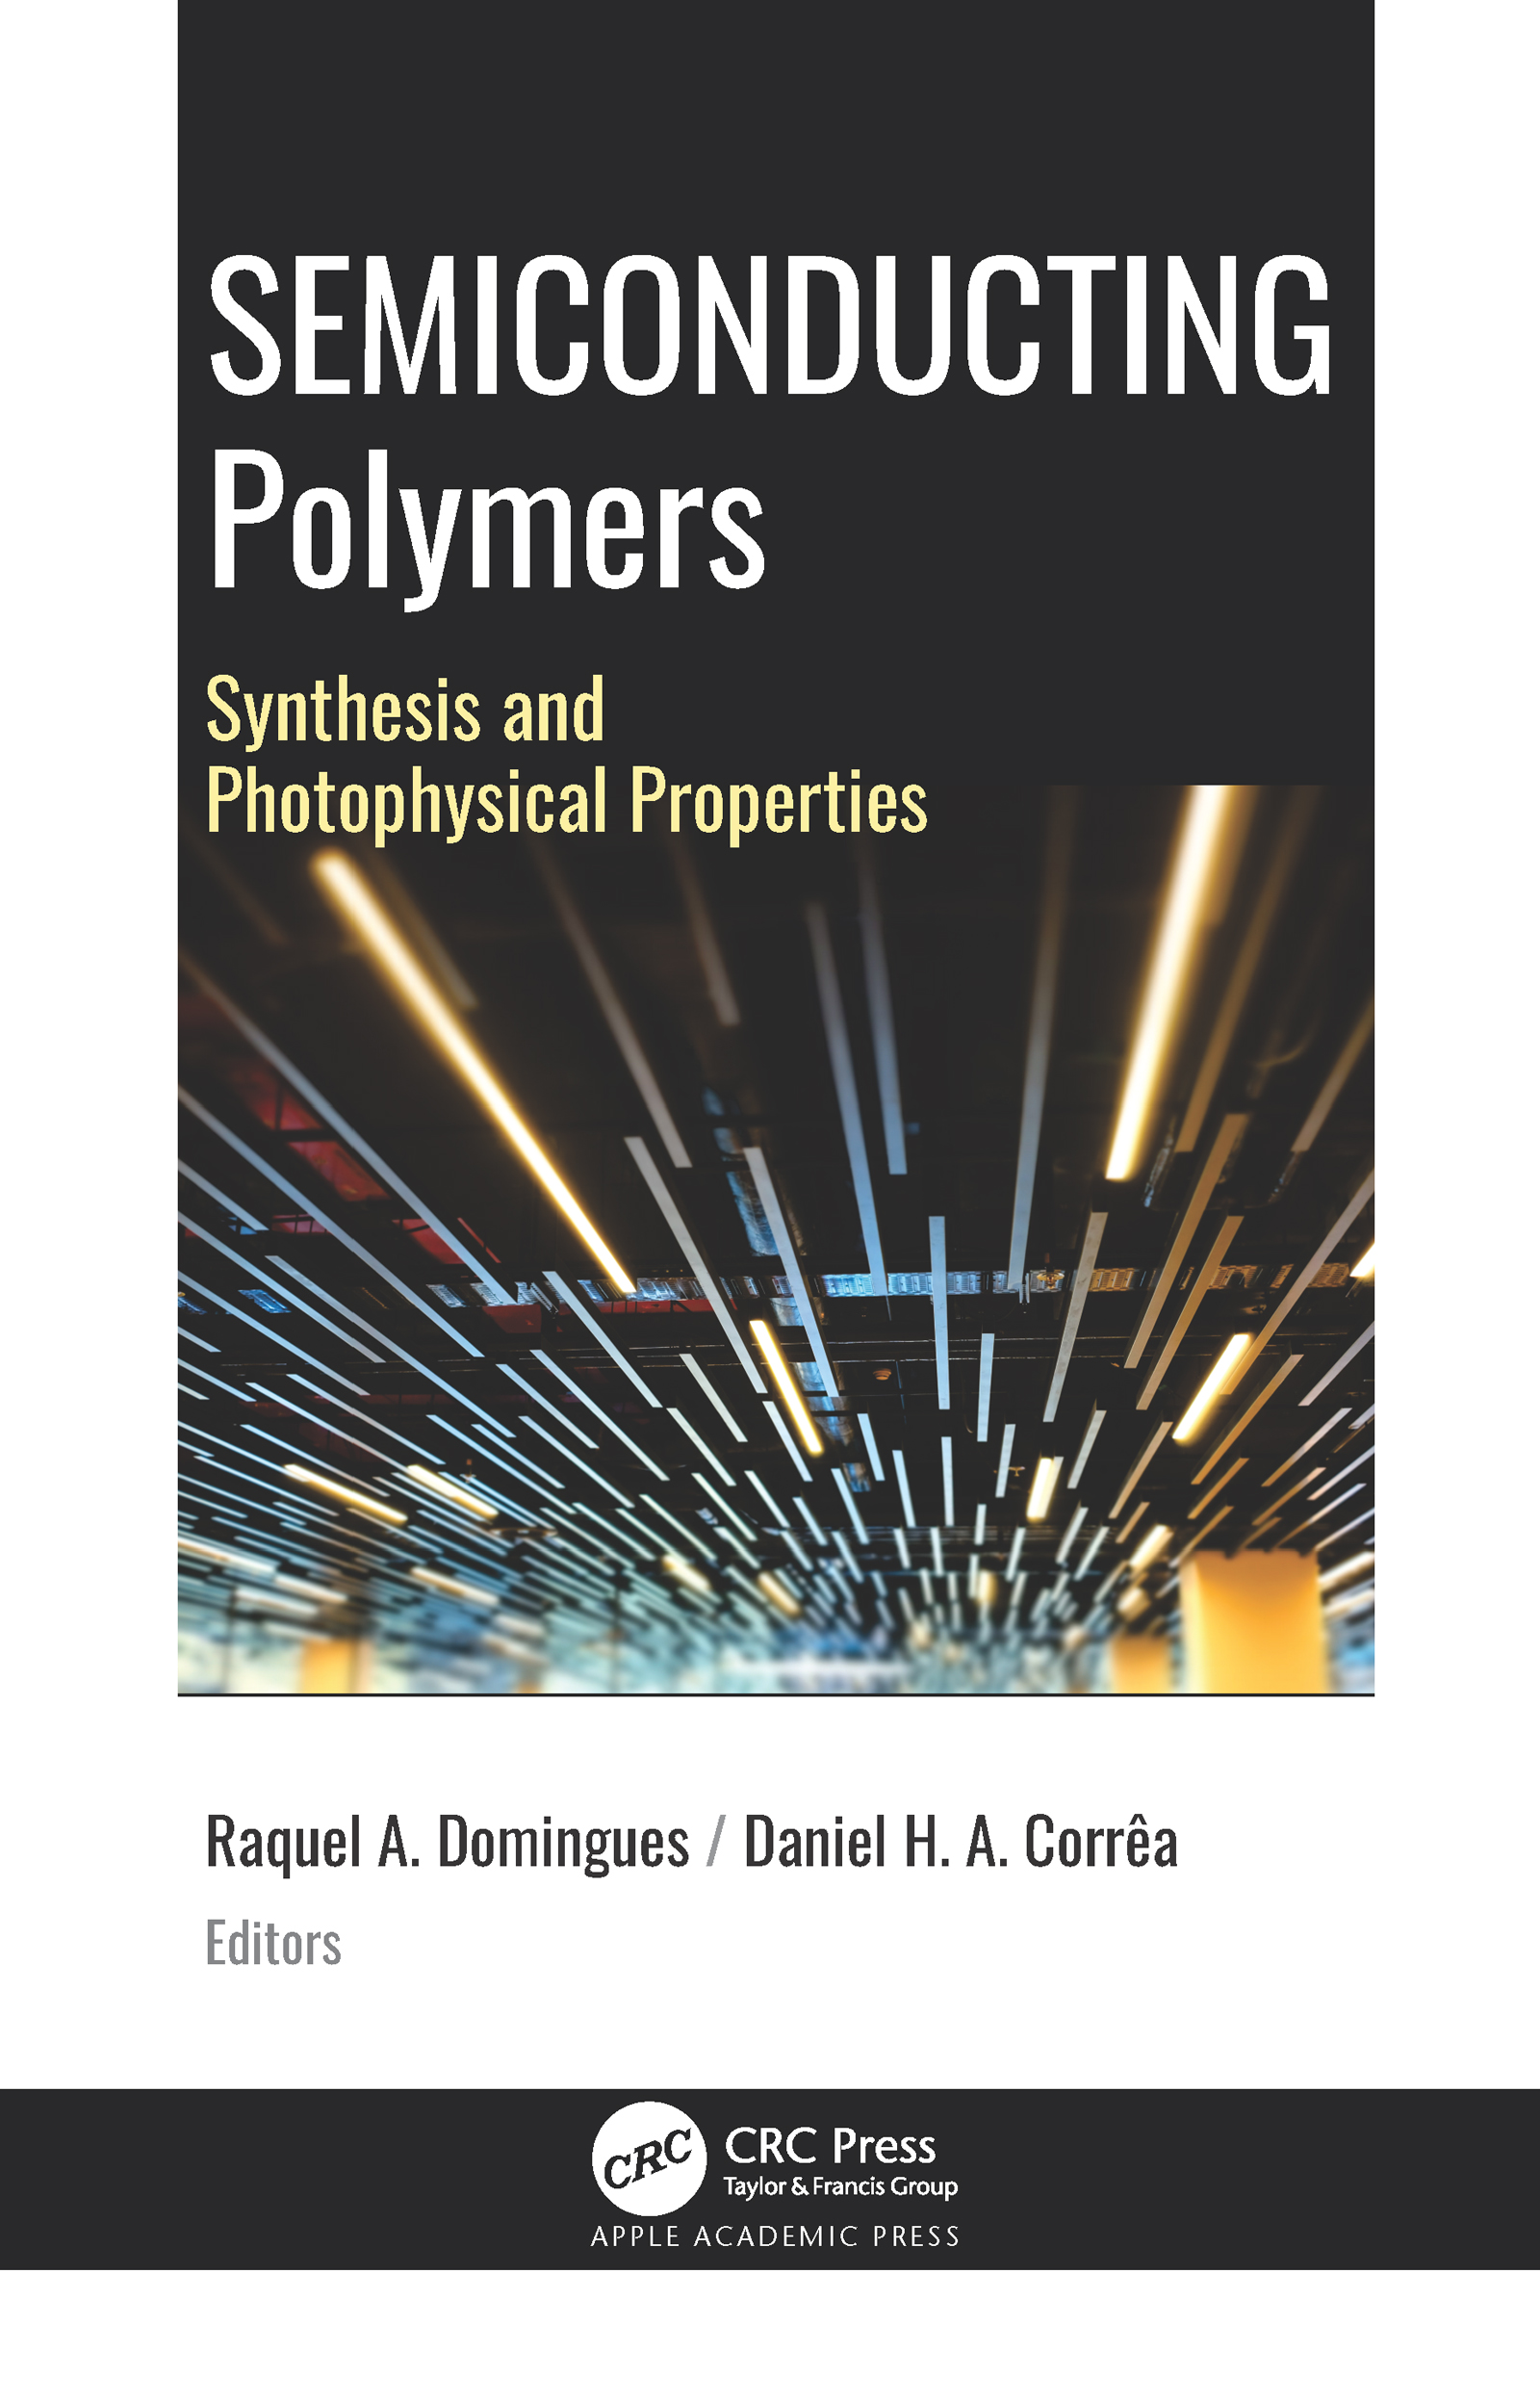 Semiconducting Polymers: Synthesis and Photophysics Properties book cover